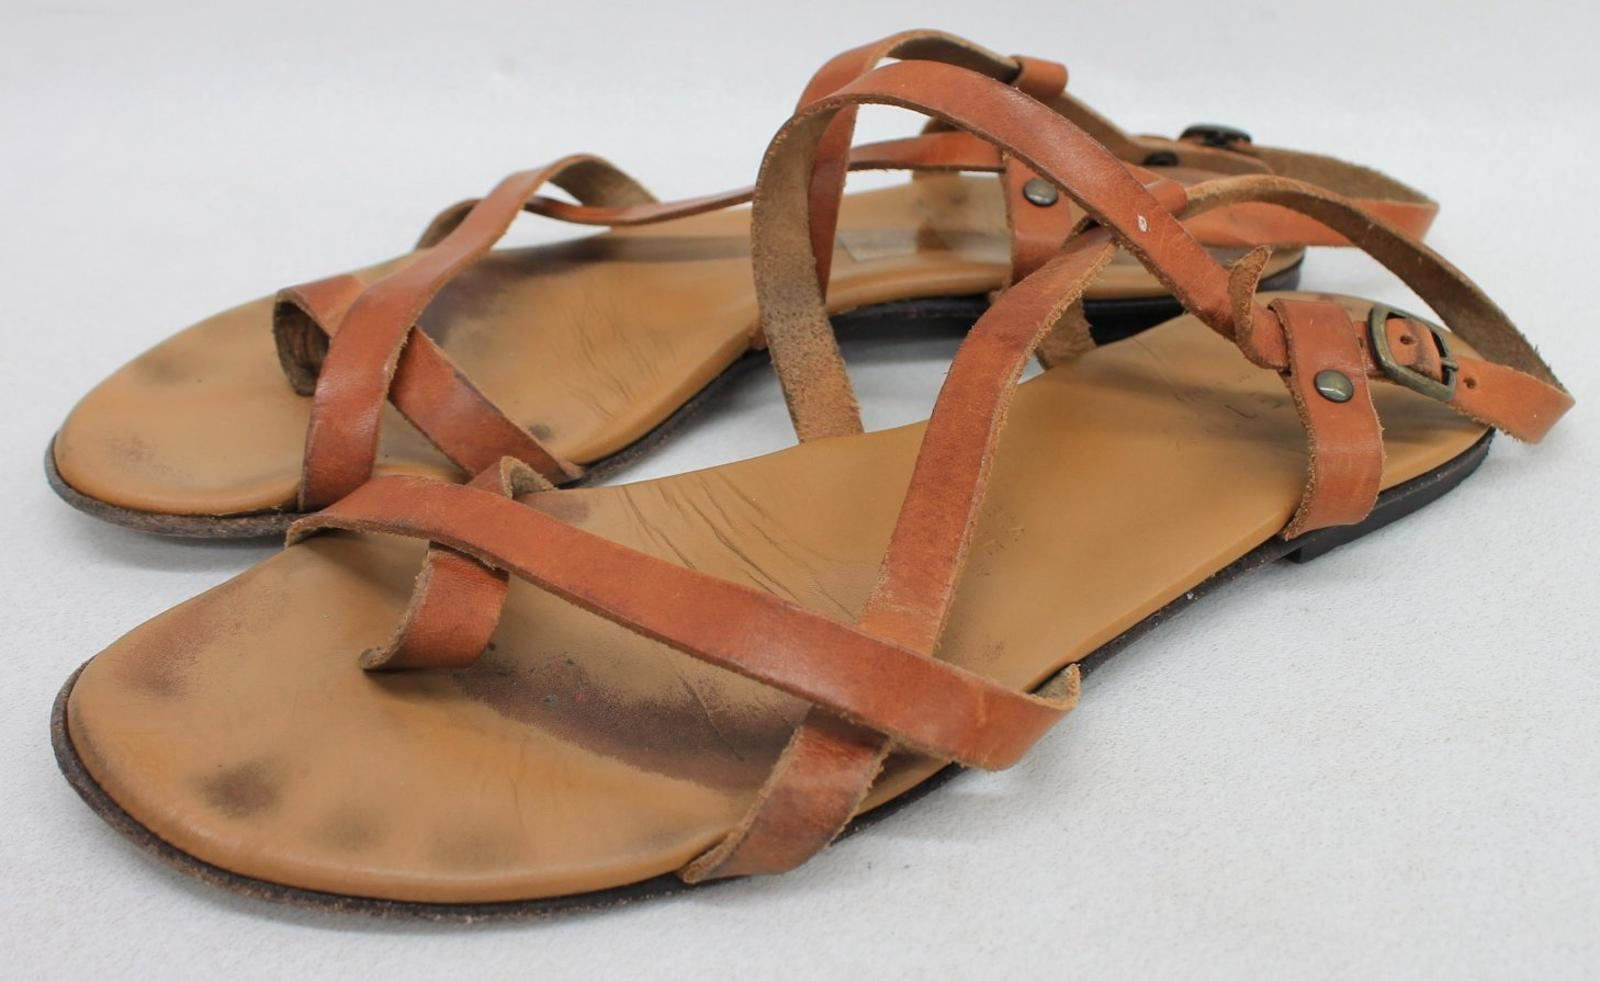 POETRY-Ladies-Tan-Brown-Leather-Strappy-Slingback-Flat-Sandals-Shoes-UK7-EU40